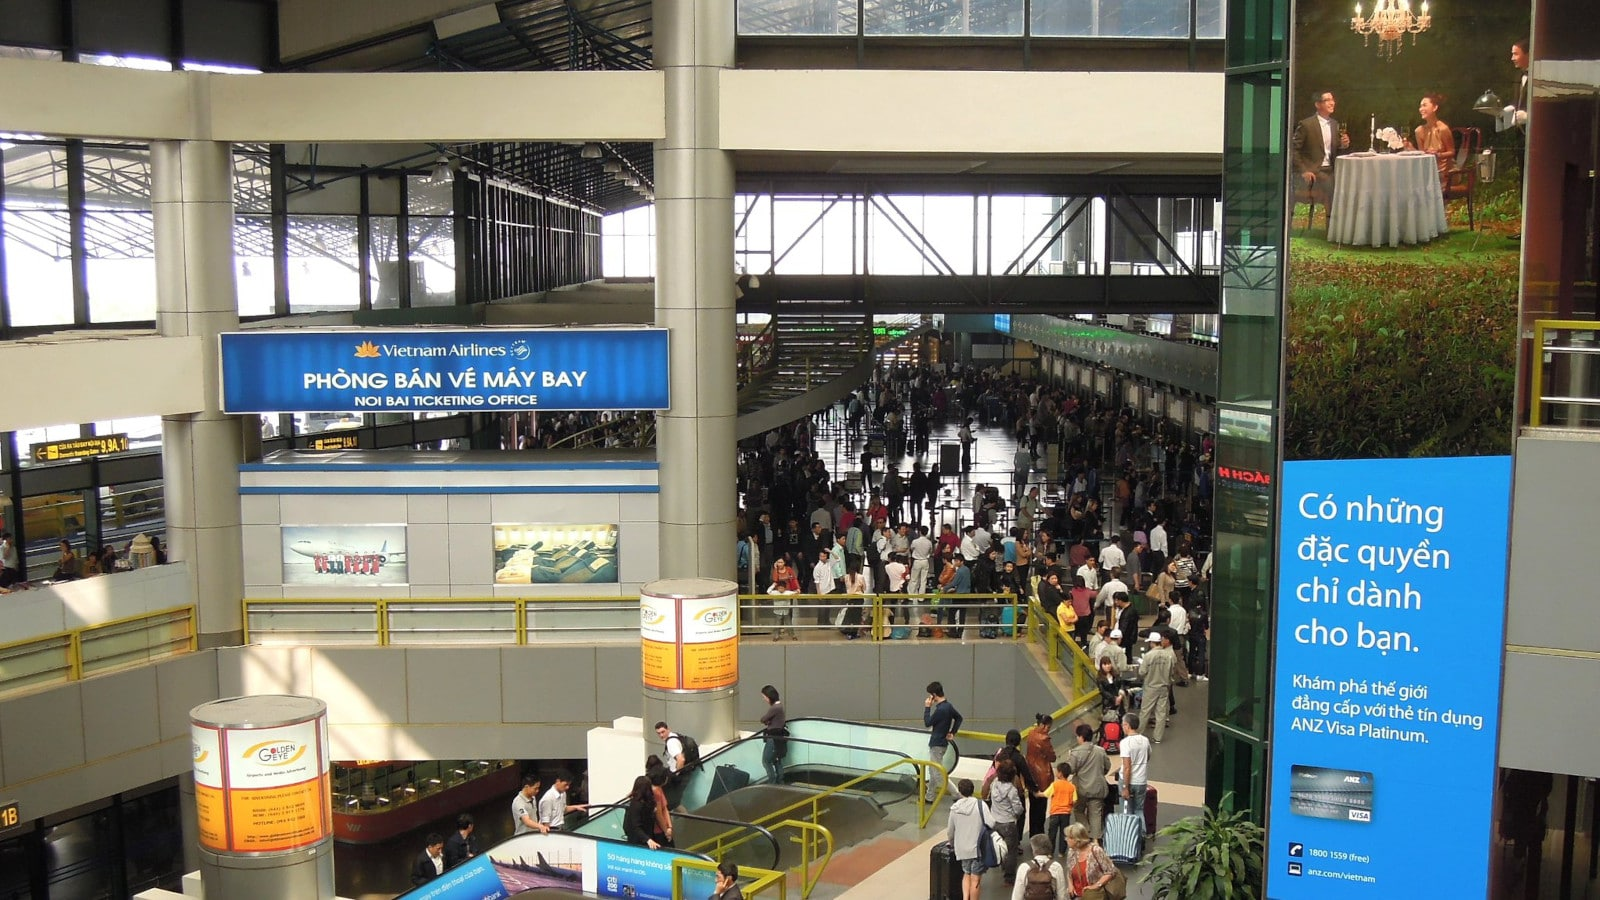 Image of the inside of the crowded Noi Bai International Airport in Vietnam